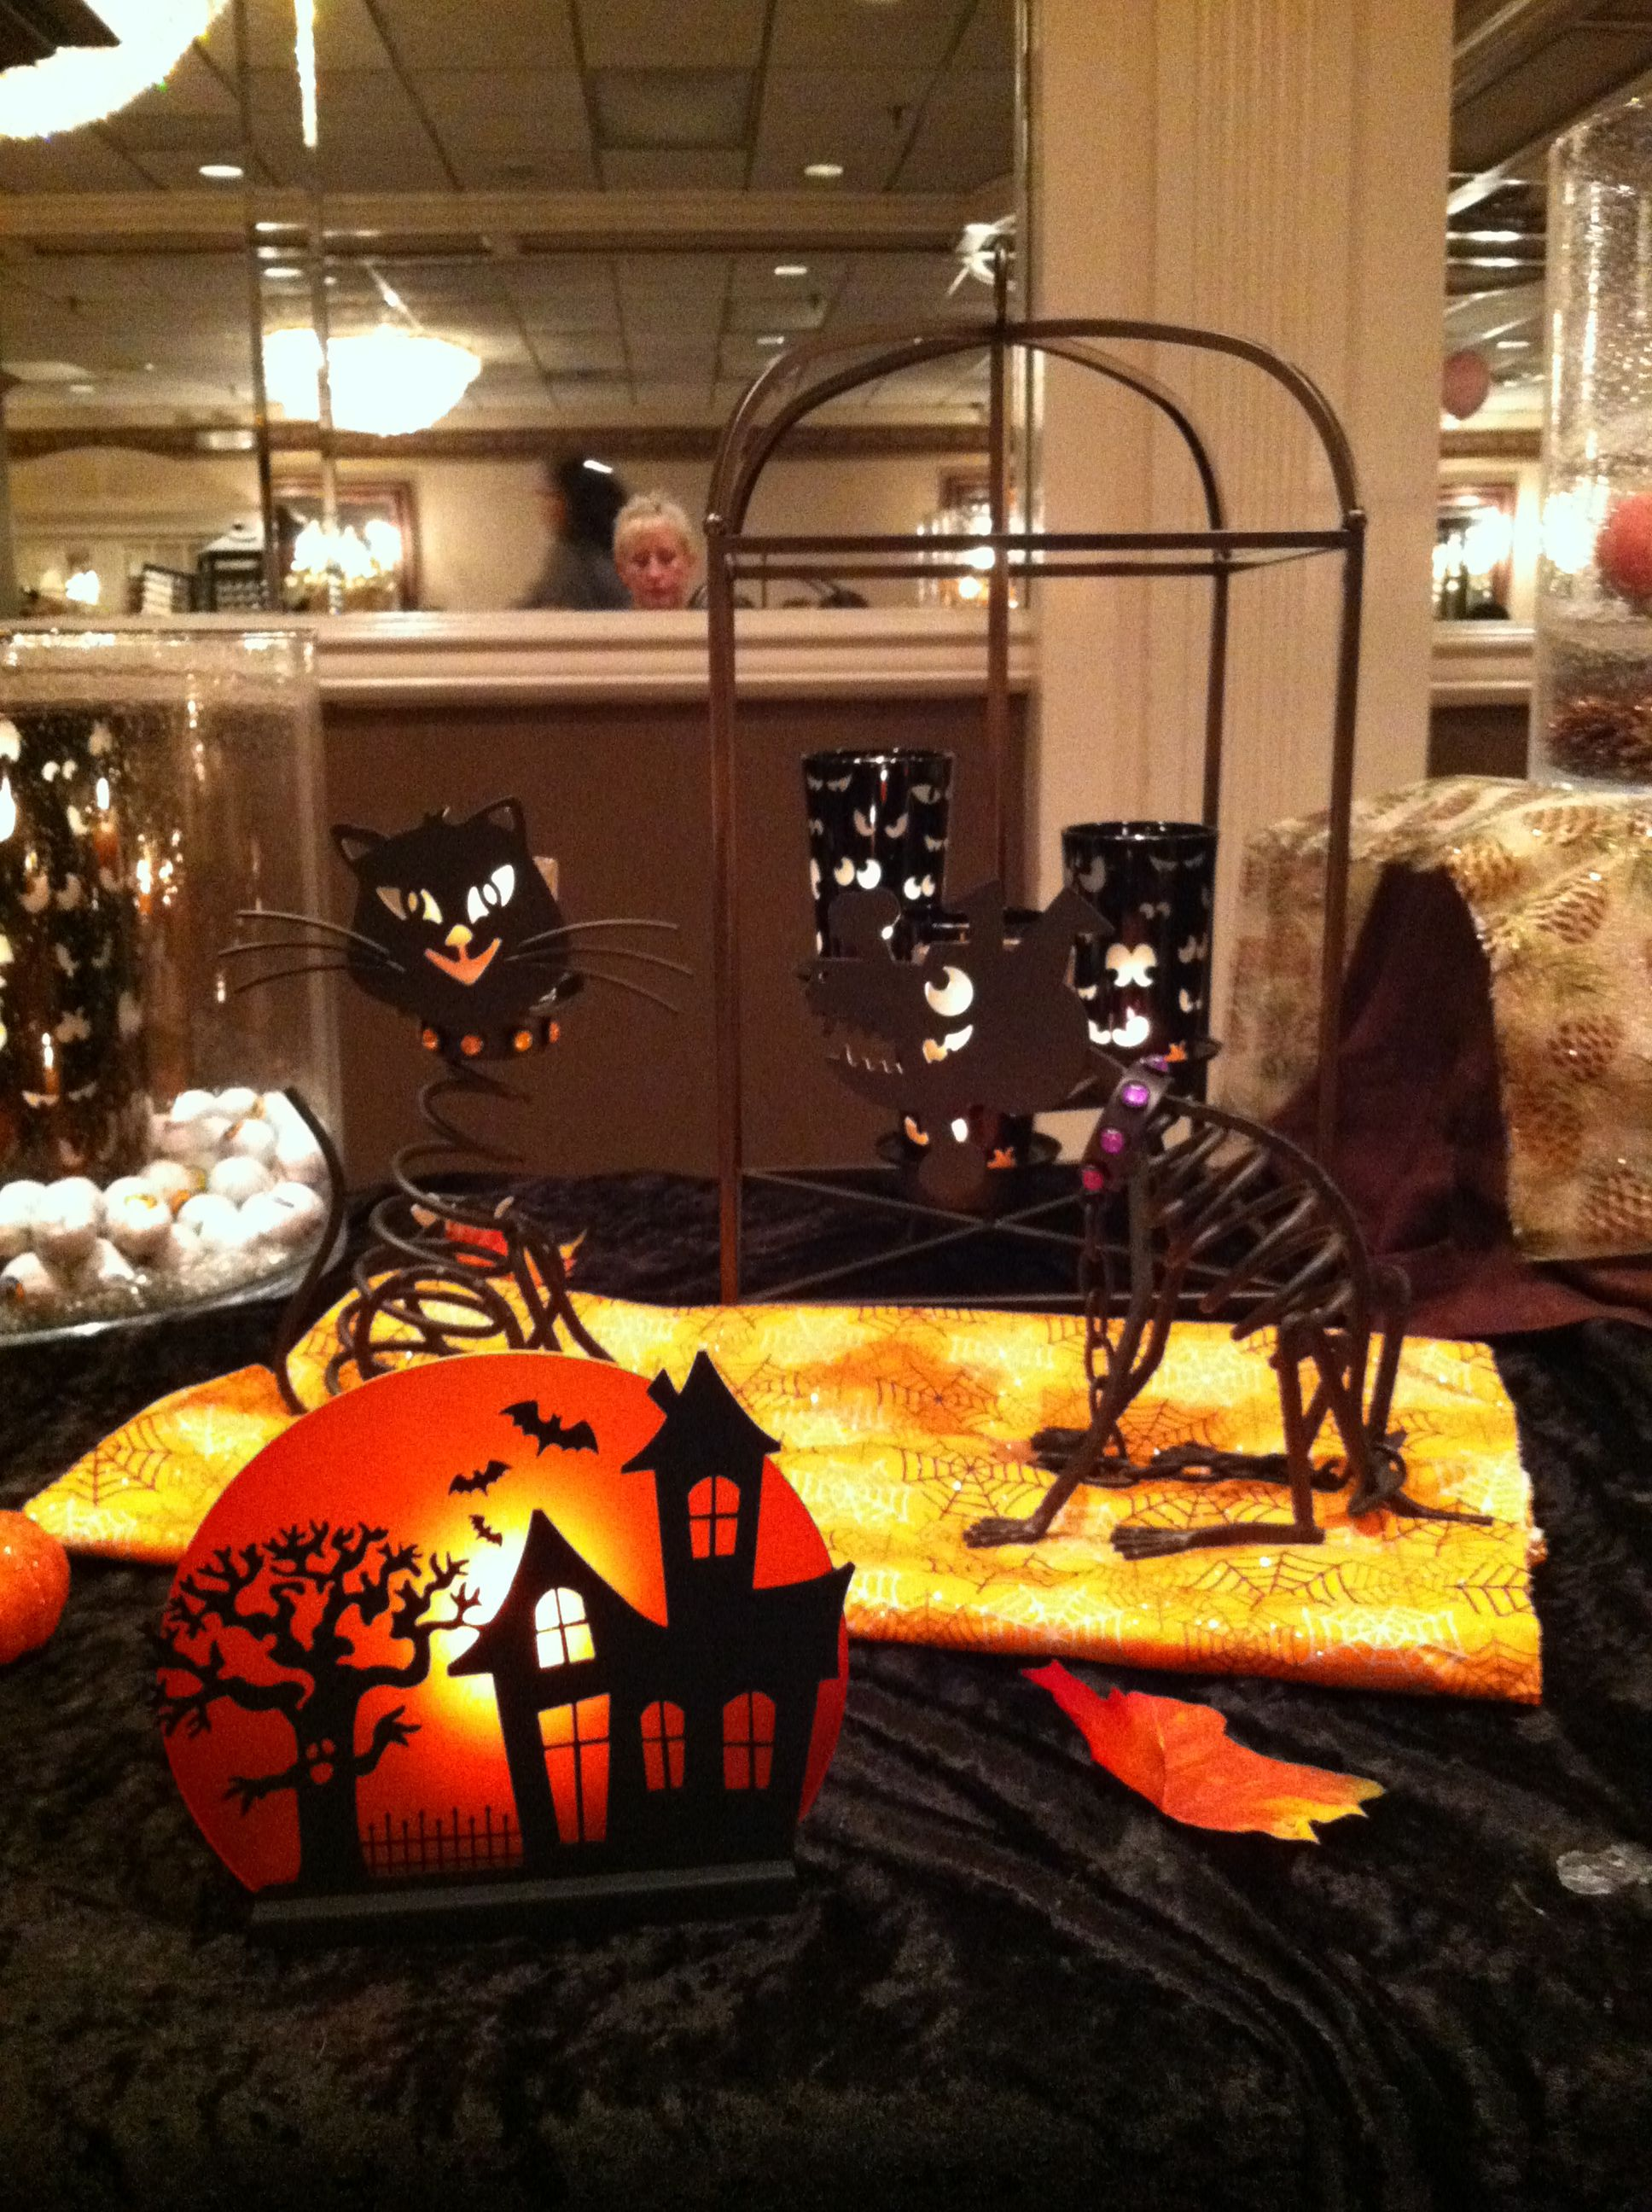 #partylite #framework candle lantern with spooky eyes votive holders. #Stones(cat) and #Sticks(dog). #spooky house votive holder www.partylite.biz/happymom